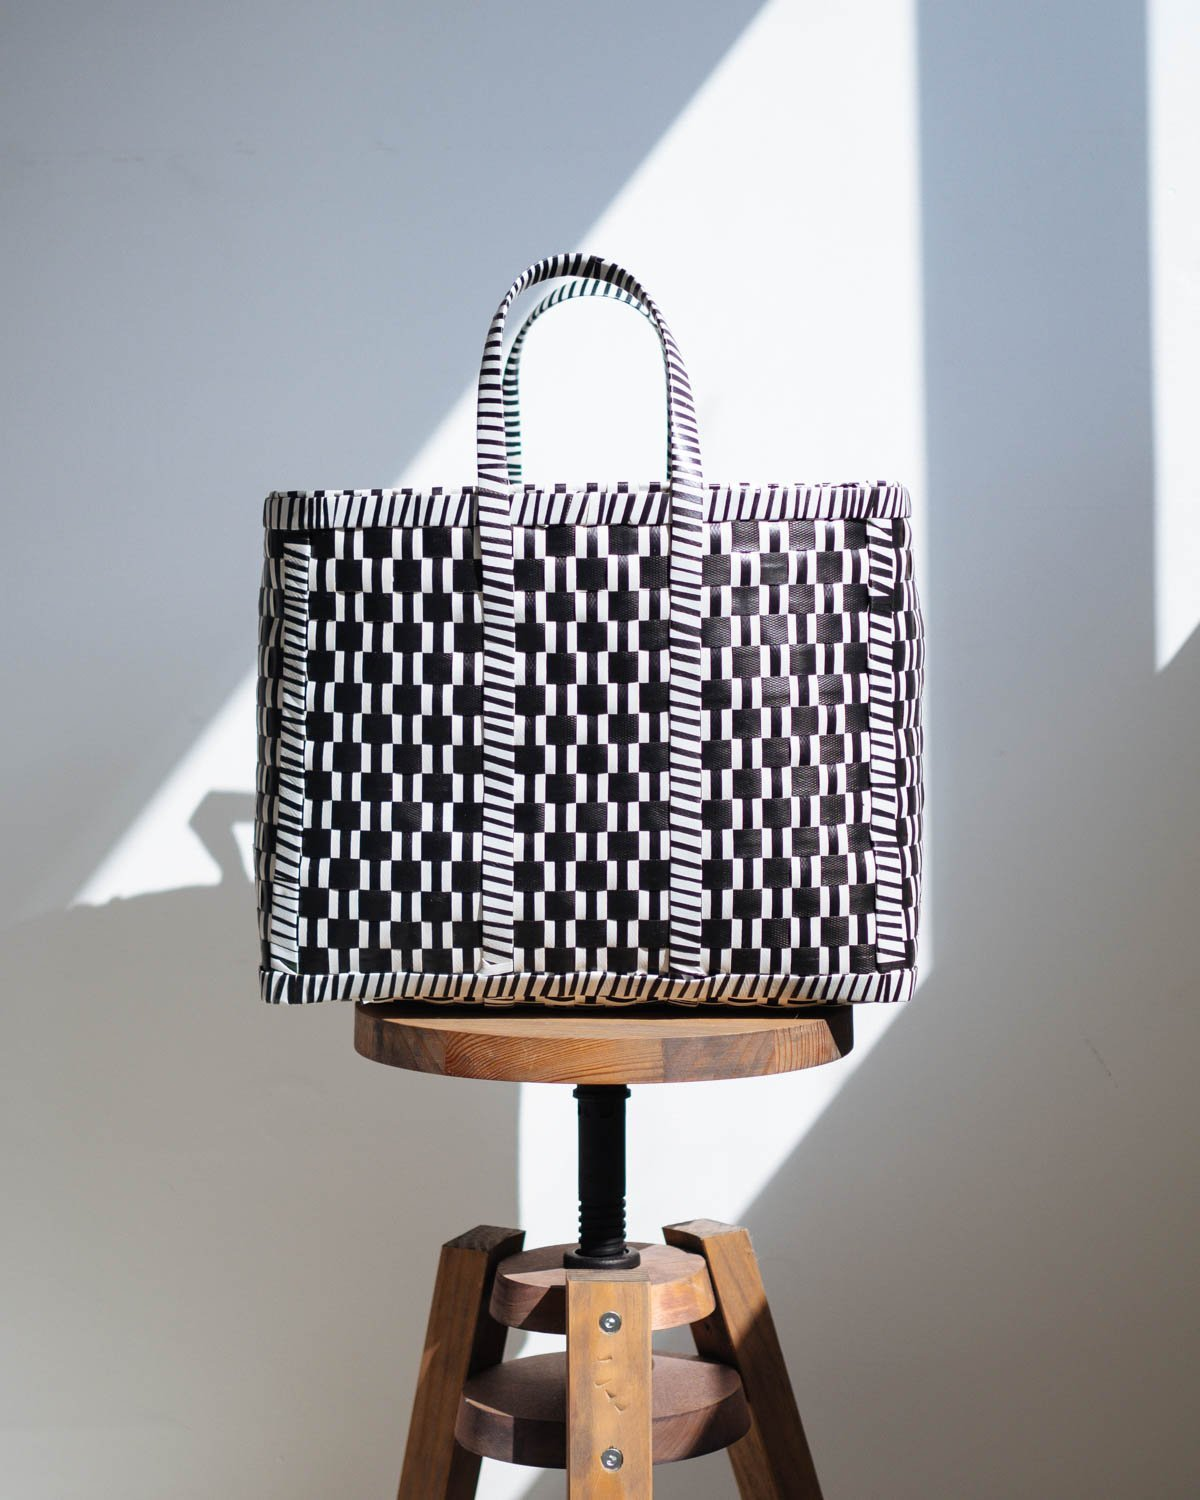 Reverse Black and White Woven Basket - YGN Collective